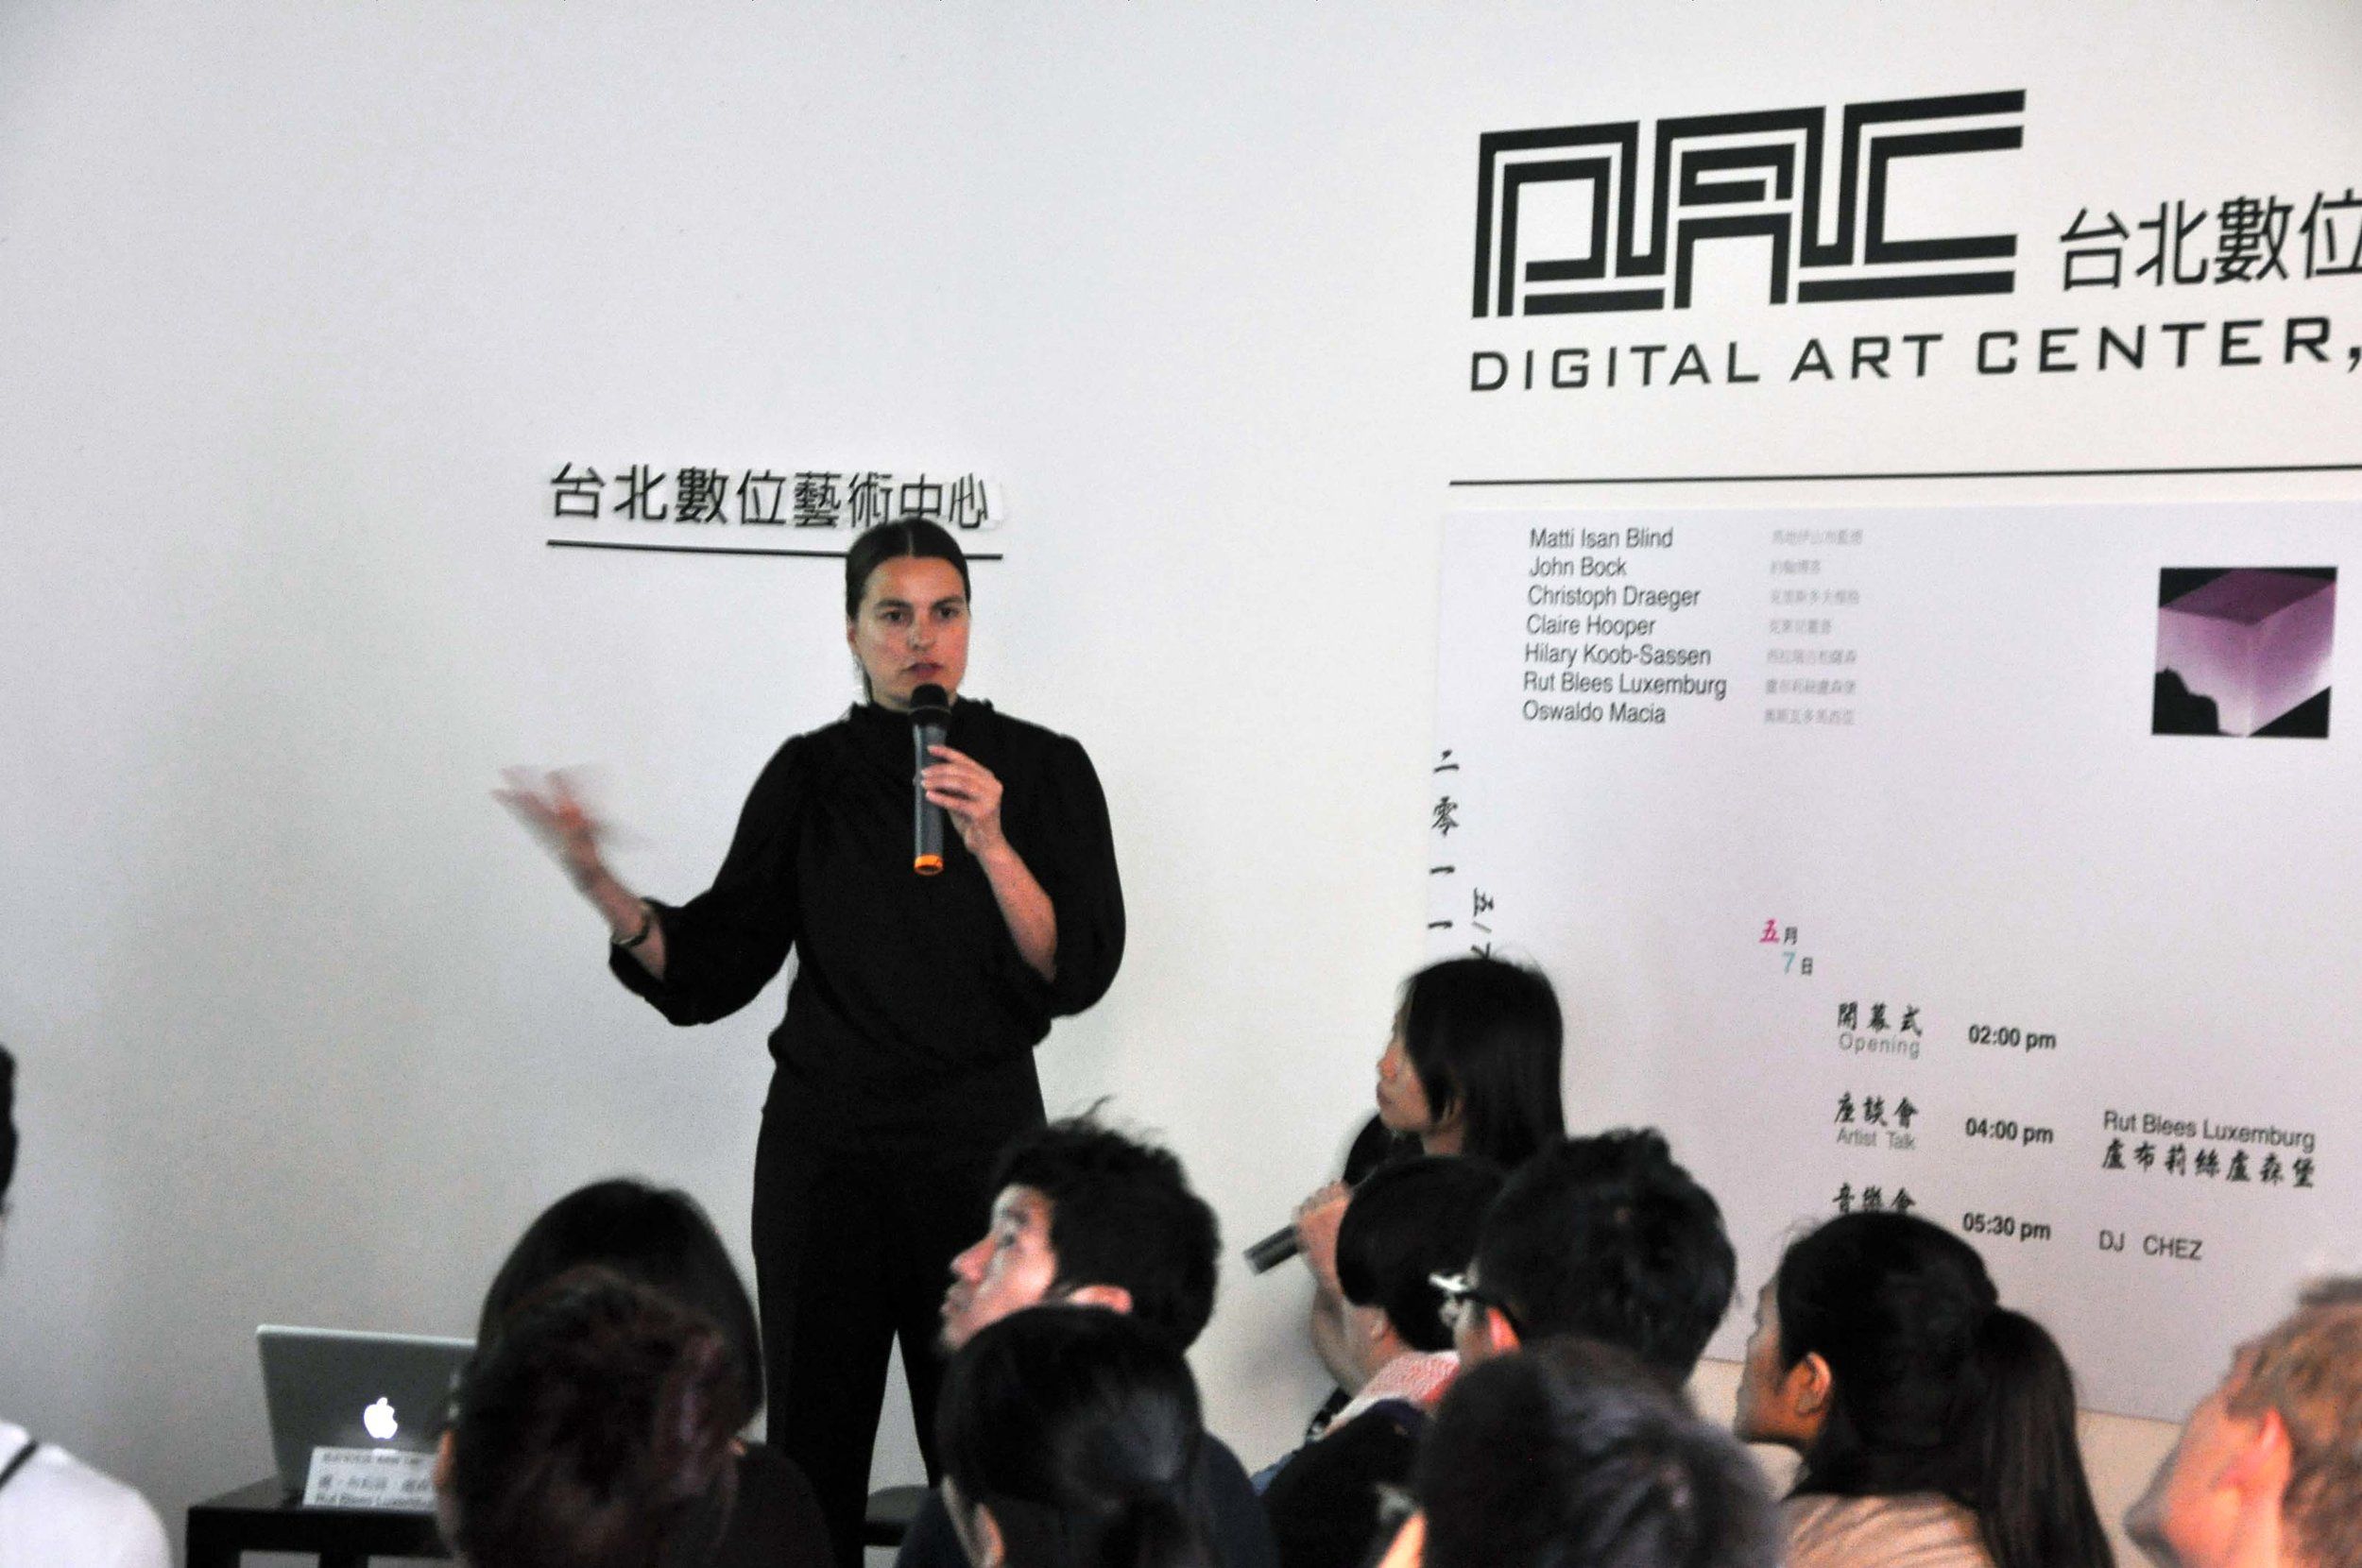 Artist Talk- Rut Blees Luxemburg (盧.布莉絲.盧森堡) on the 7th of May in 2011.